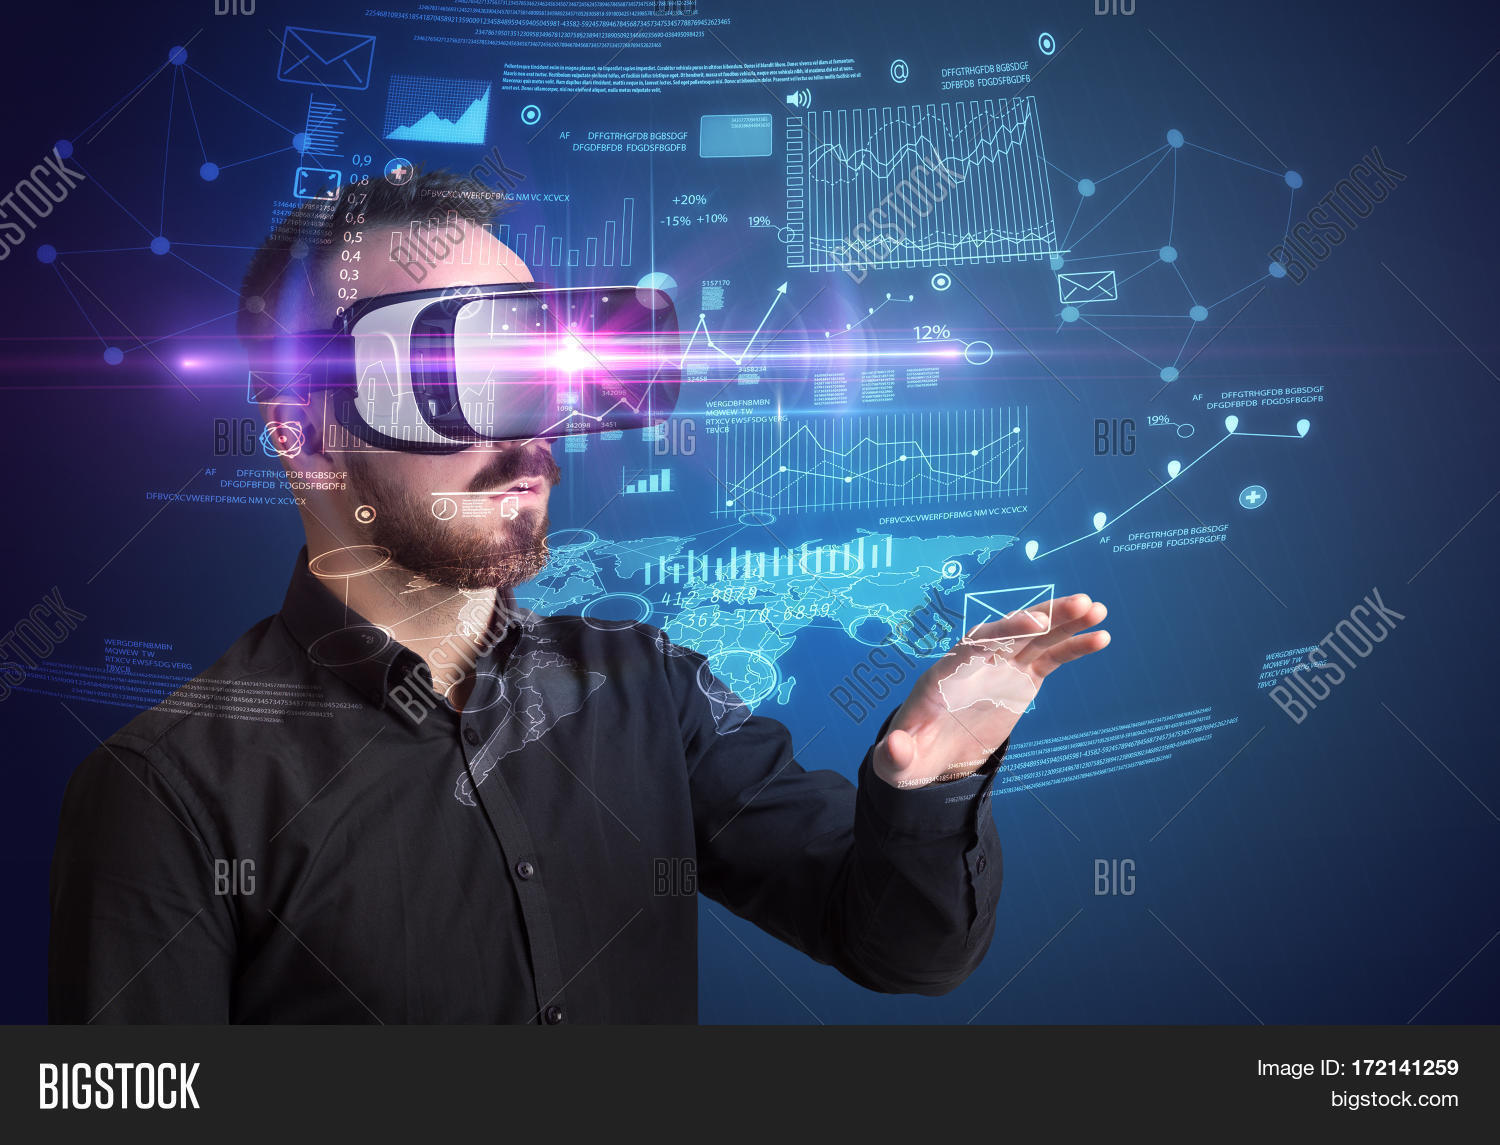 Captivate Trade Show Attendees with Virtual & Augmented Reality